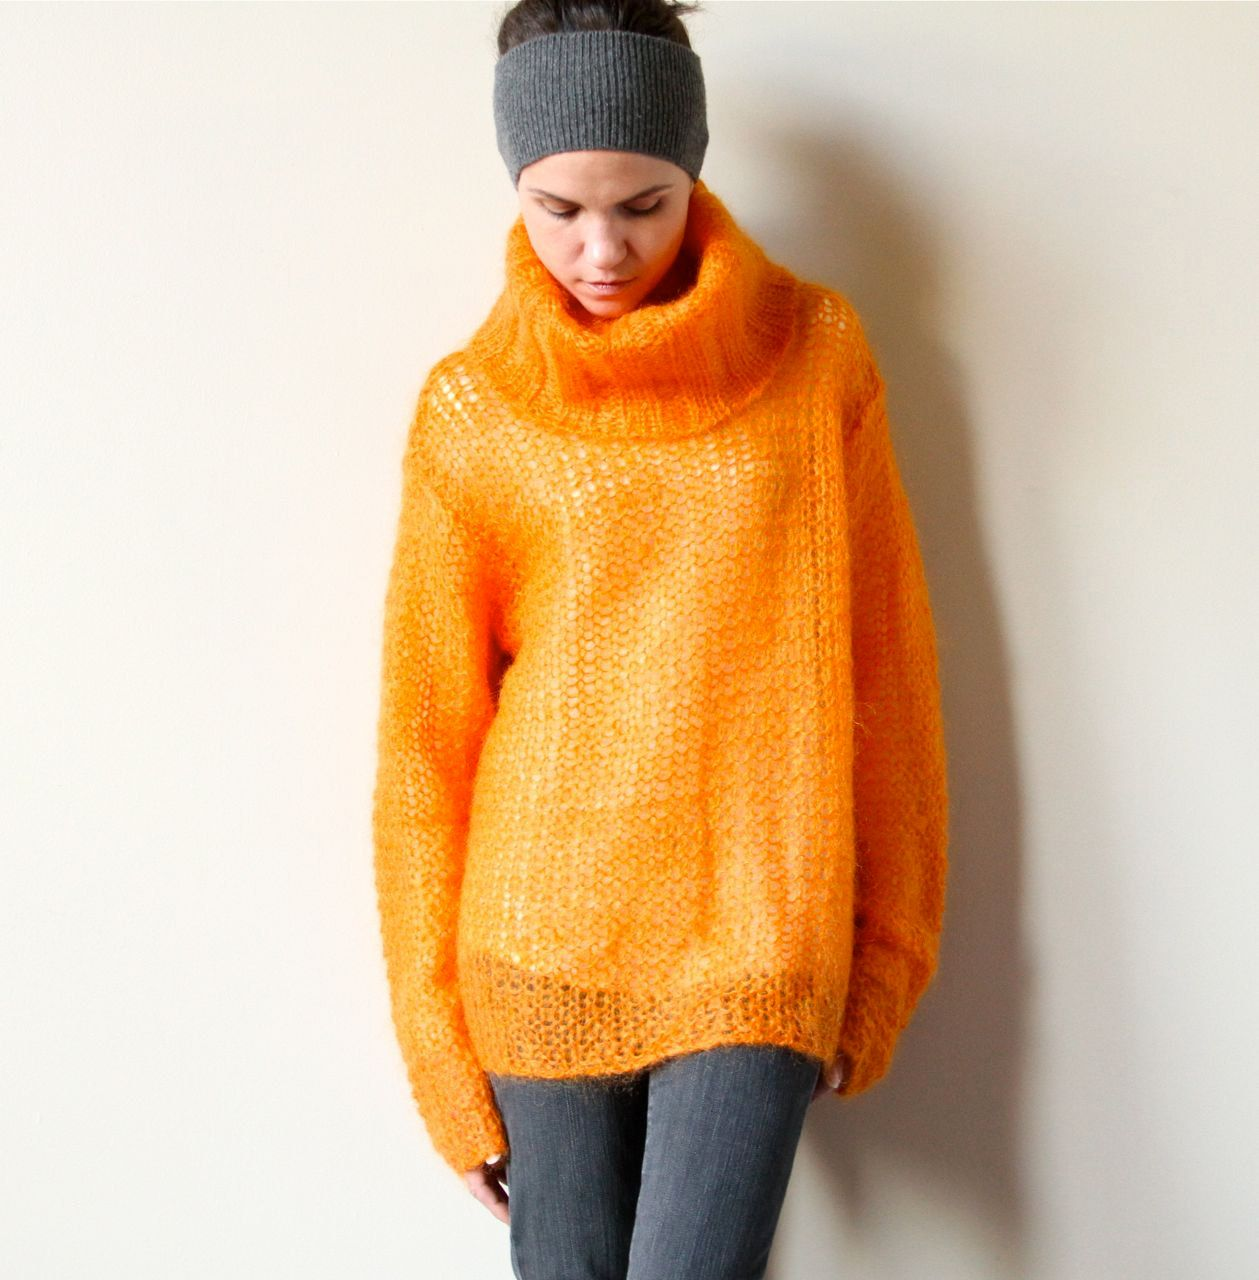 Soft mock neck mohair sweater | Soft and Fuzzy!!! | Pinterest ...